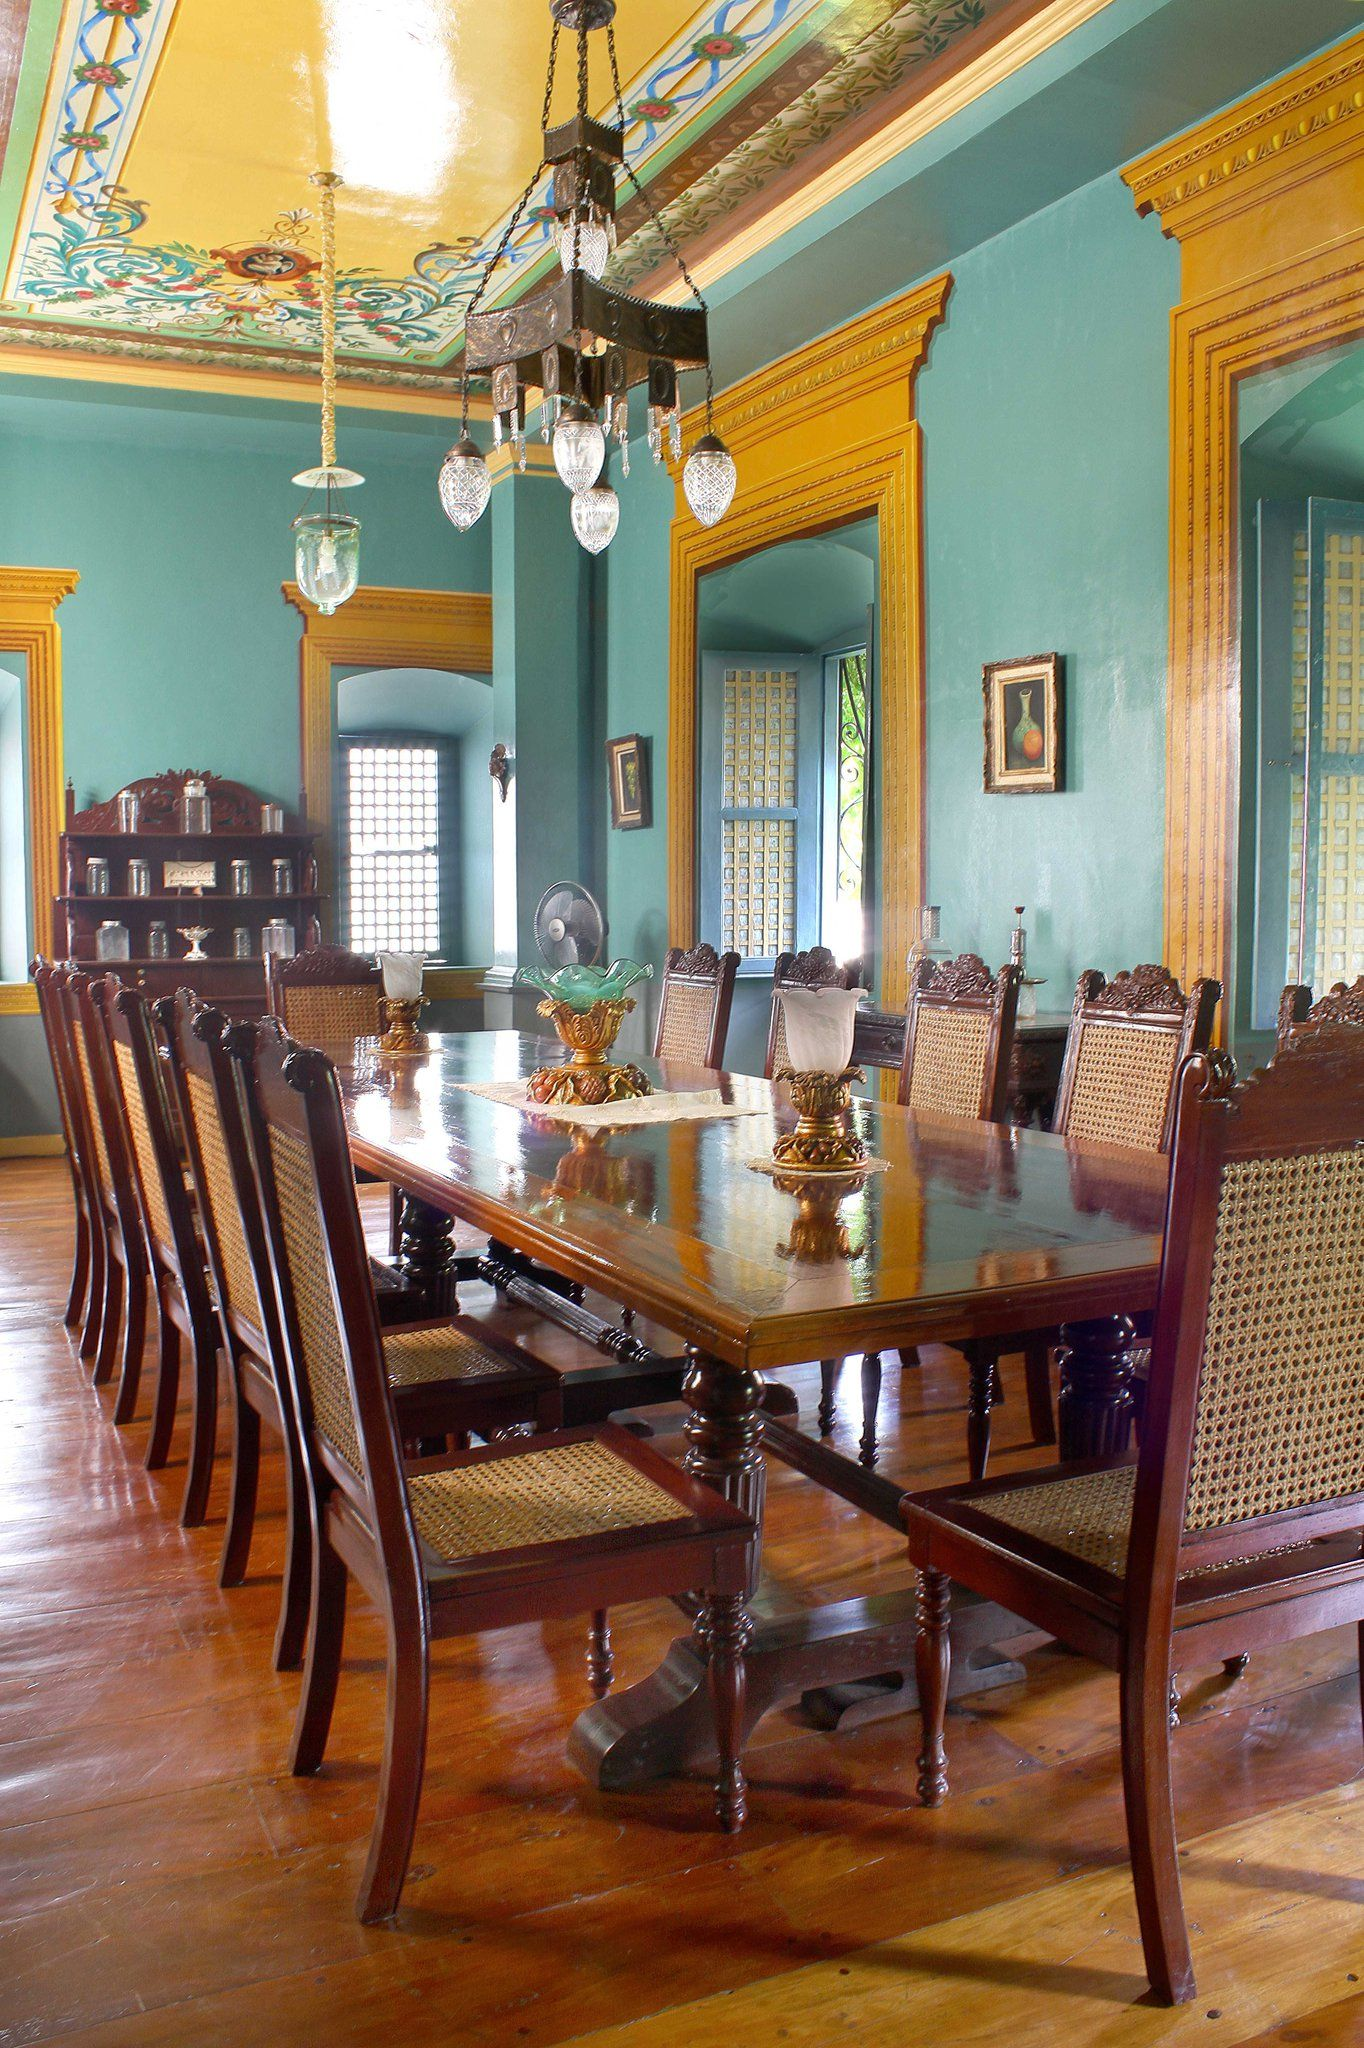 Filipino Home Styling The Grand Dining Room Of An Ancestral